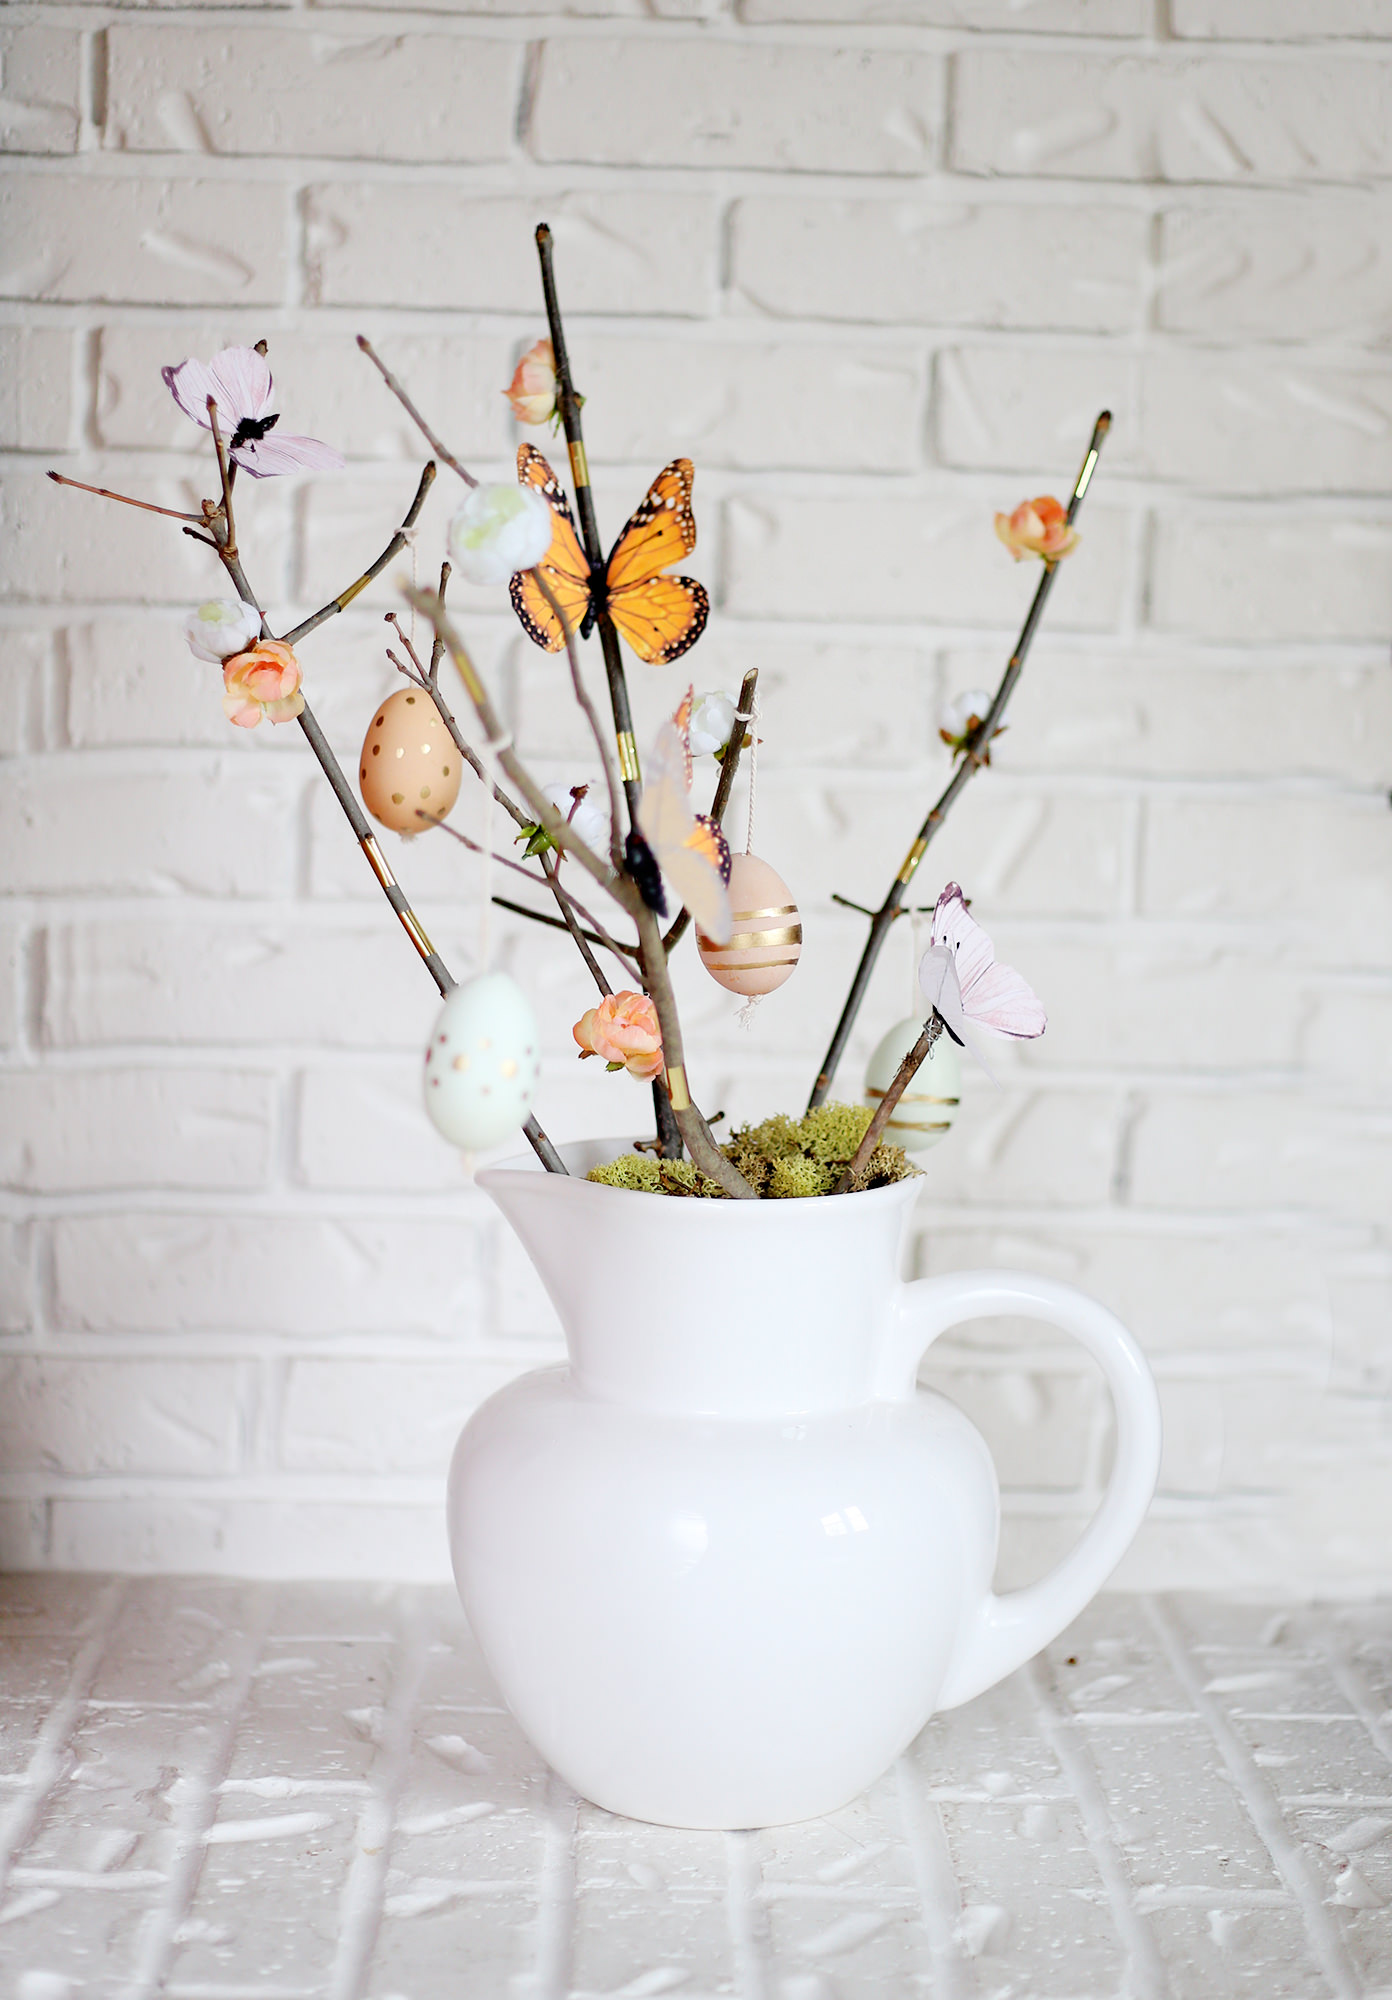 Create a new Spring centerpiece! This modern Easter tree puts an organic spin on the old classic!